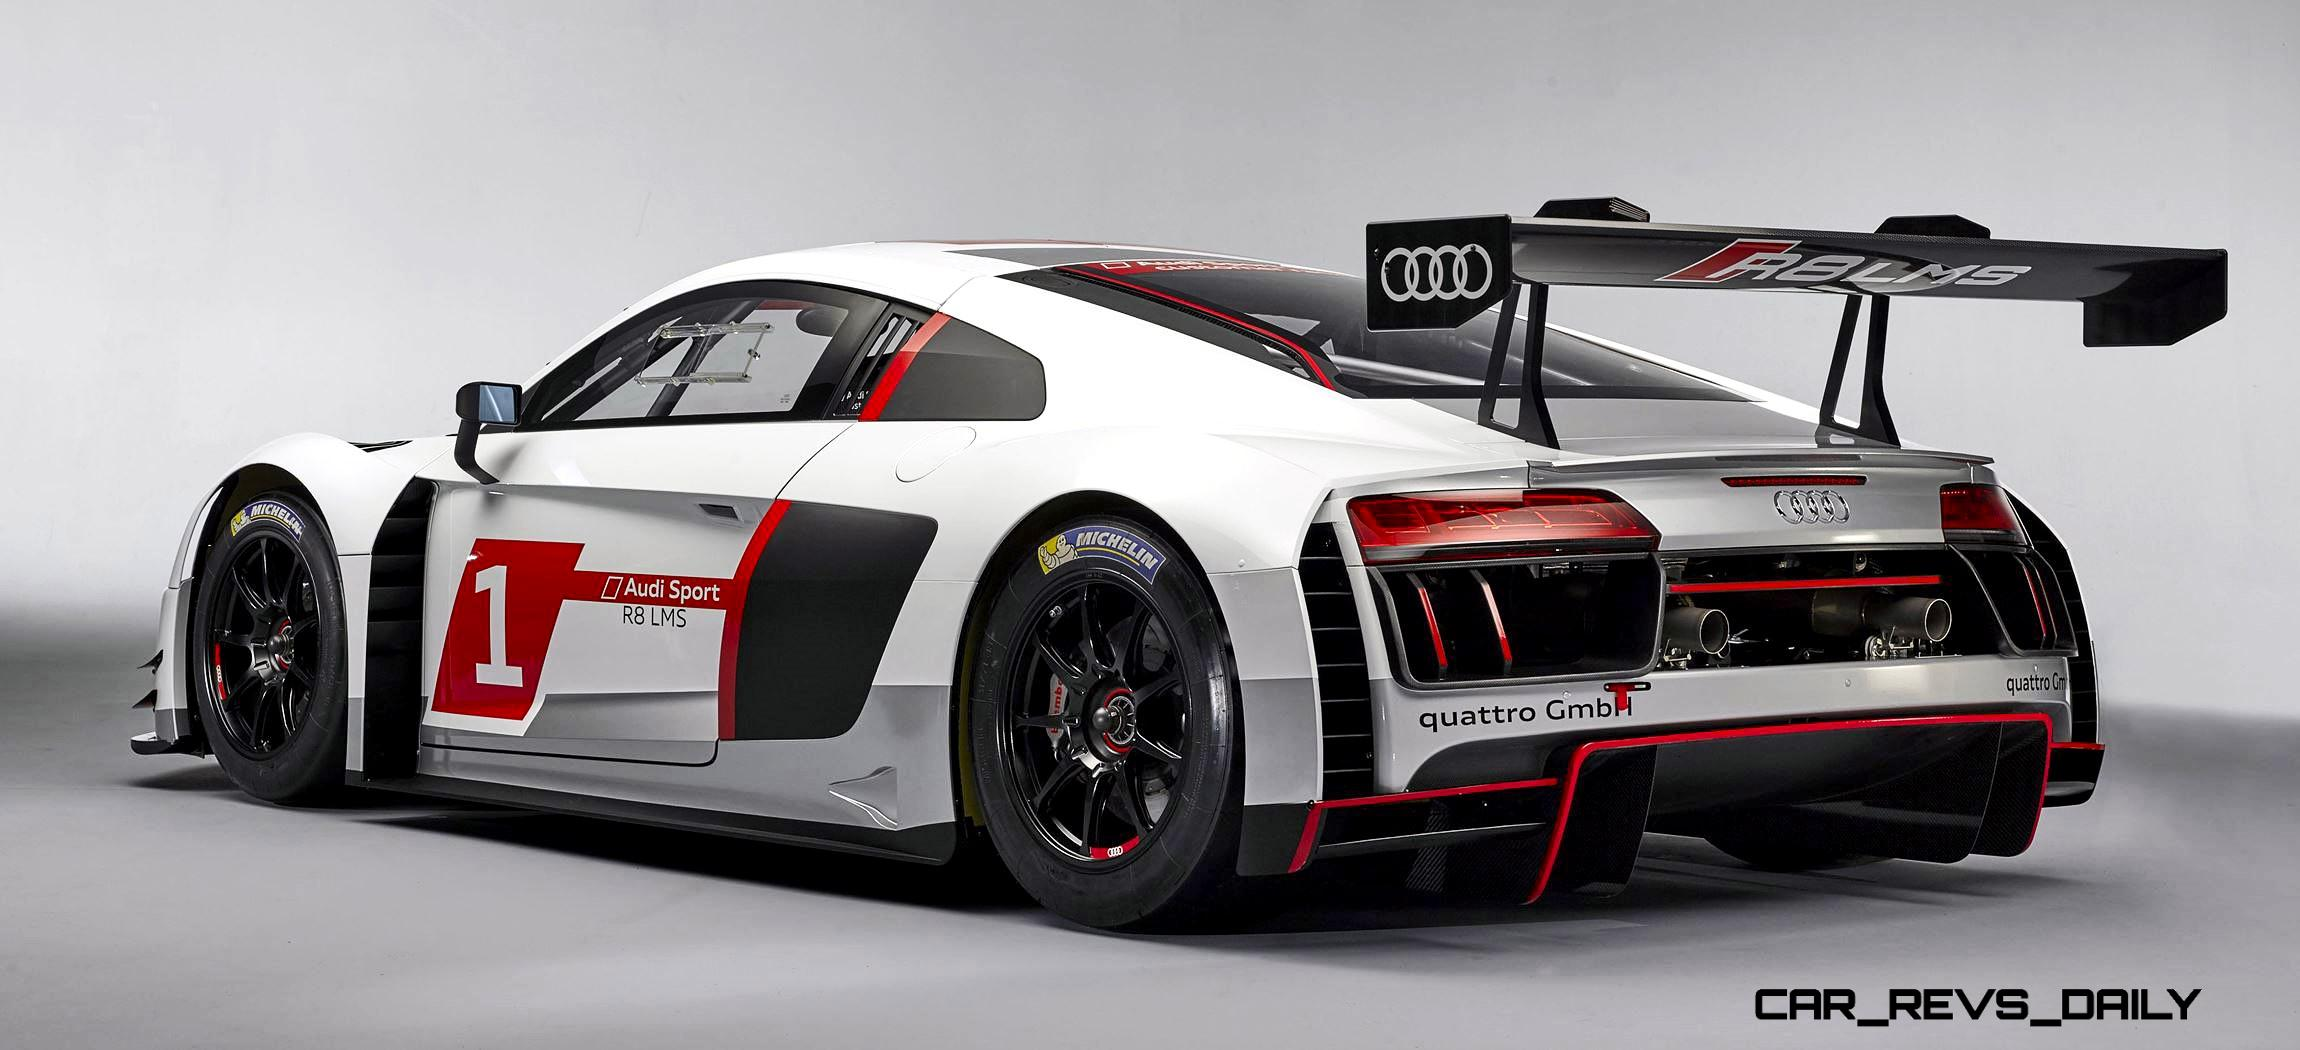 2016 audi r8 lms new open aero design analysis specs and pricing. Black Bedroom Furniture Sets. Home Design Ideas